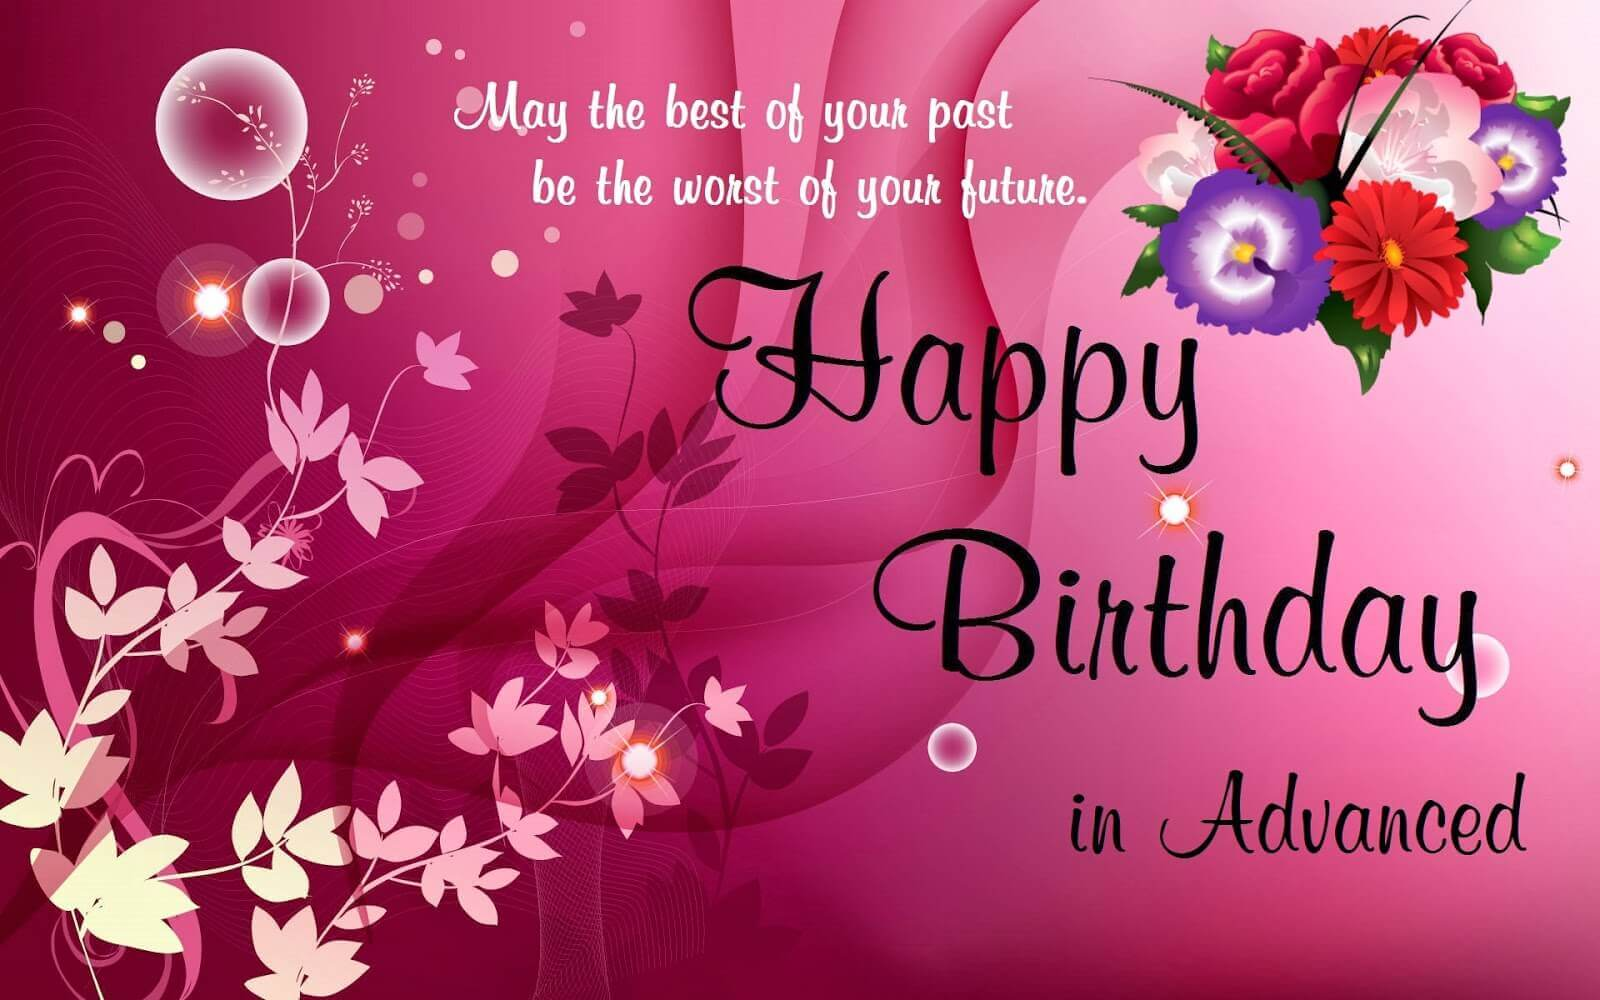 birthday picture messages for facebook ; Best-Happy-Birthday-Wishes-Messages-For-Boyfriend-and-Girlfriend-3